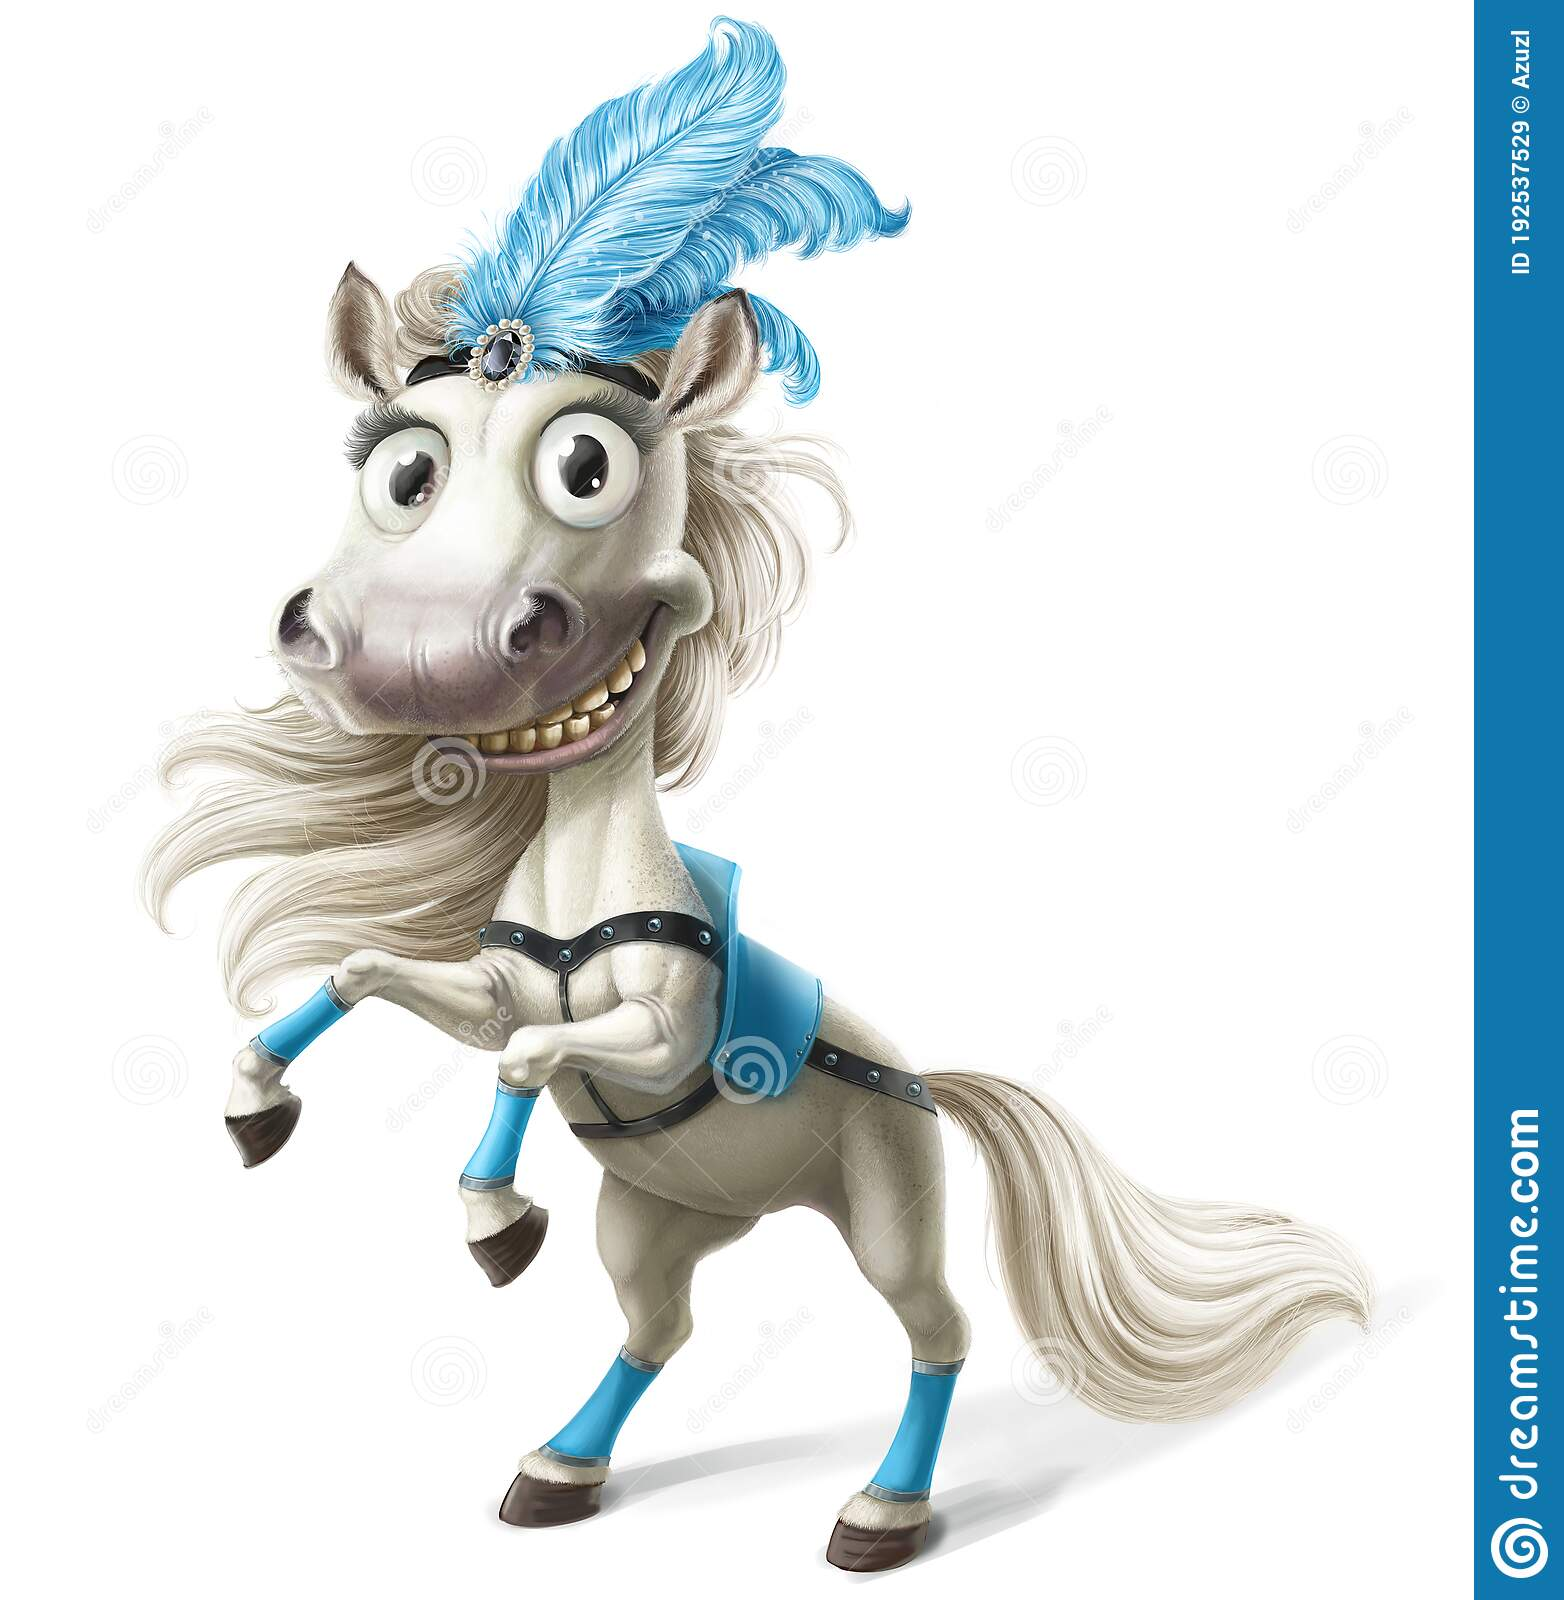 Realistic Drawing Horse Stock Illustrations 789 Realistic Drawing Horse Stock Illustrations Vectors Clipart Dreamstime